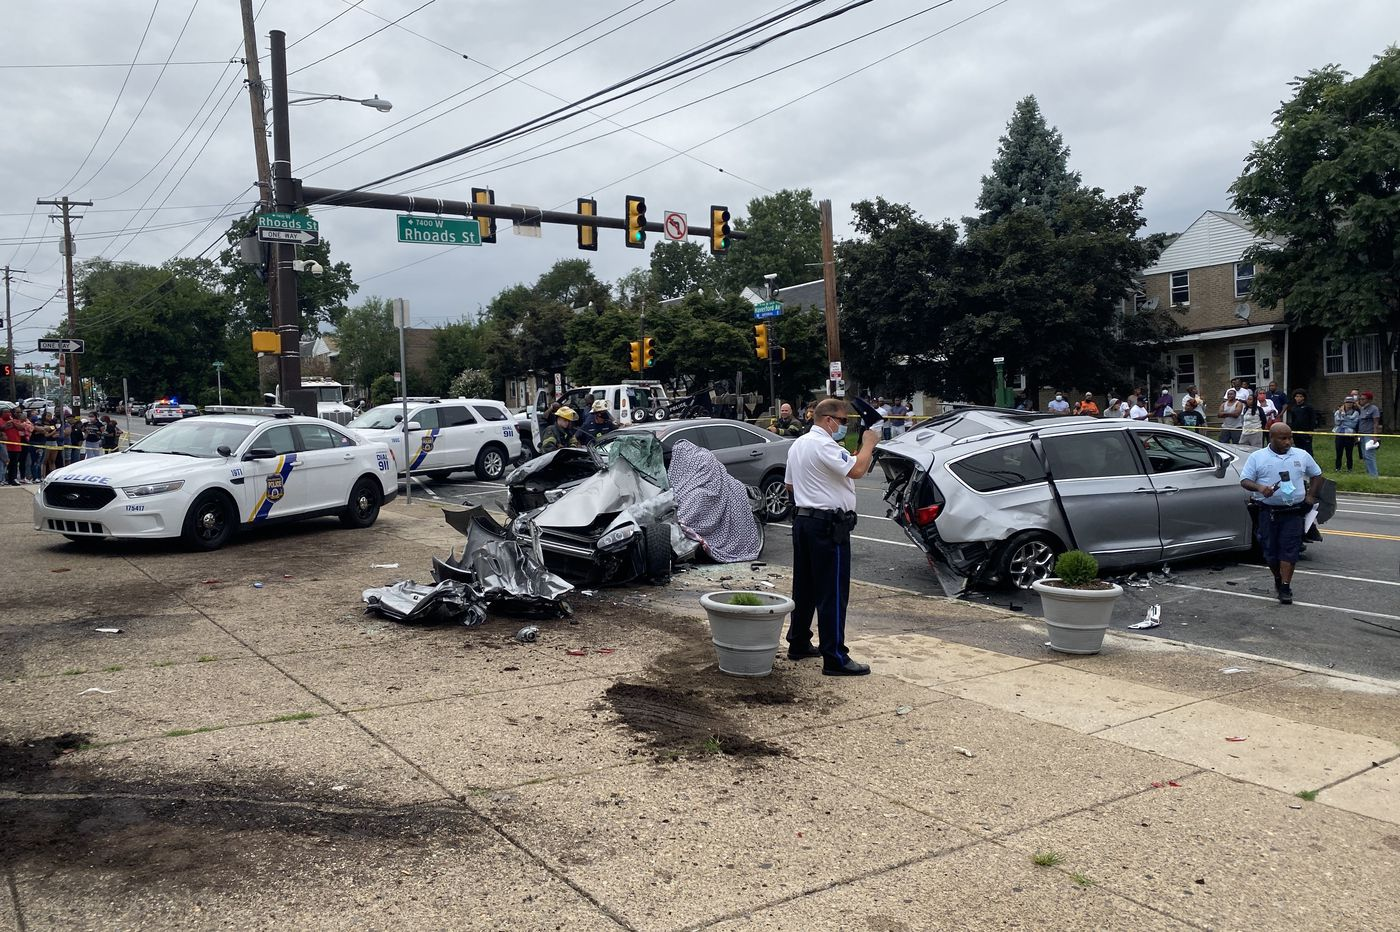 Driver who fled crash that killed 1, injured 6 in West Philly located by police, described as a juvenile